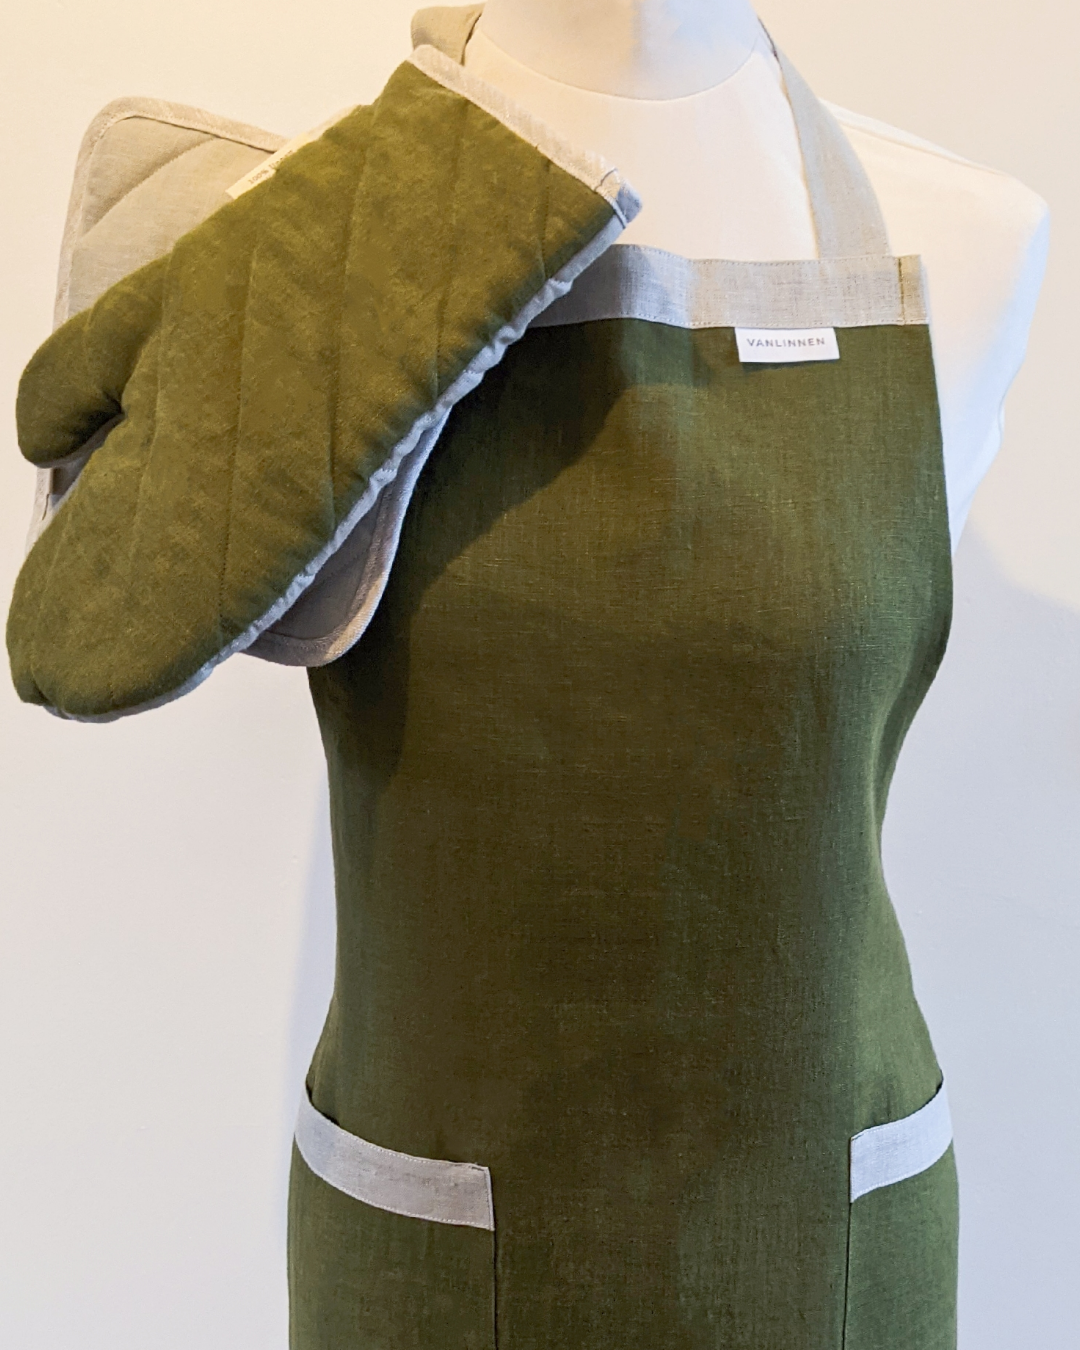 Linen apron in hunting green